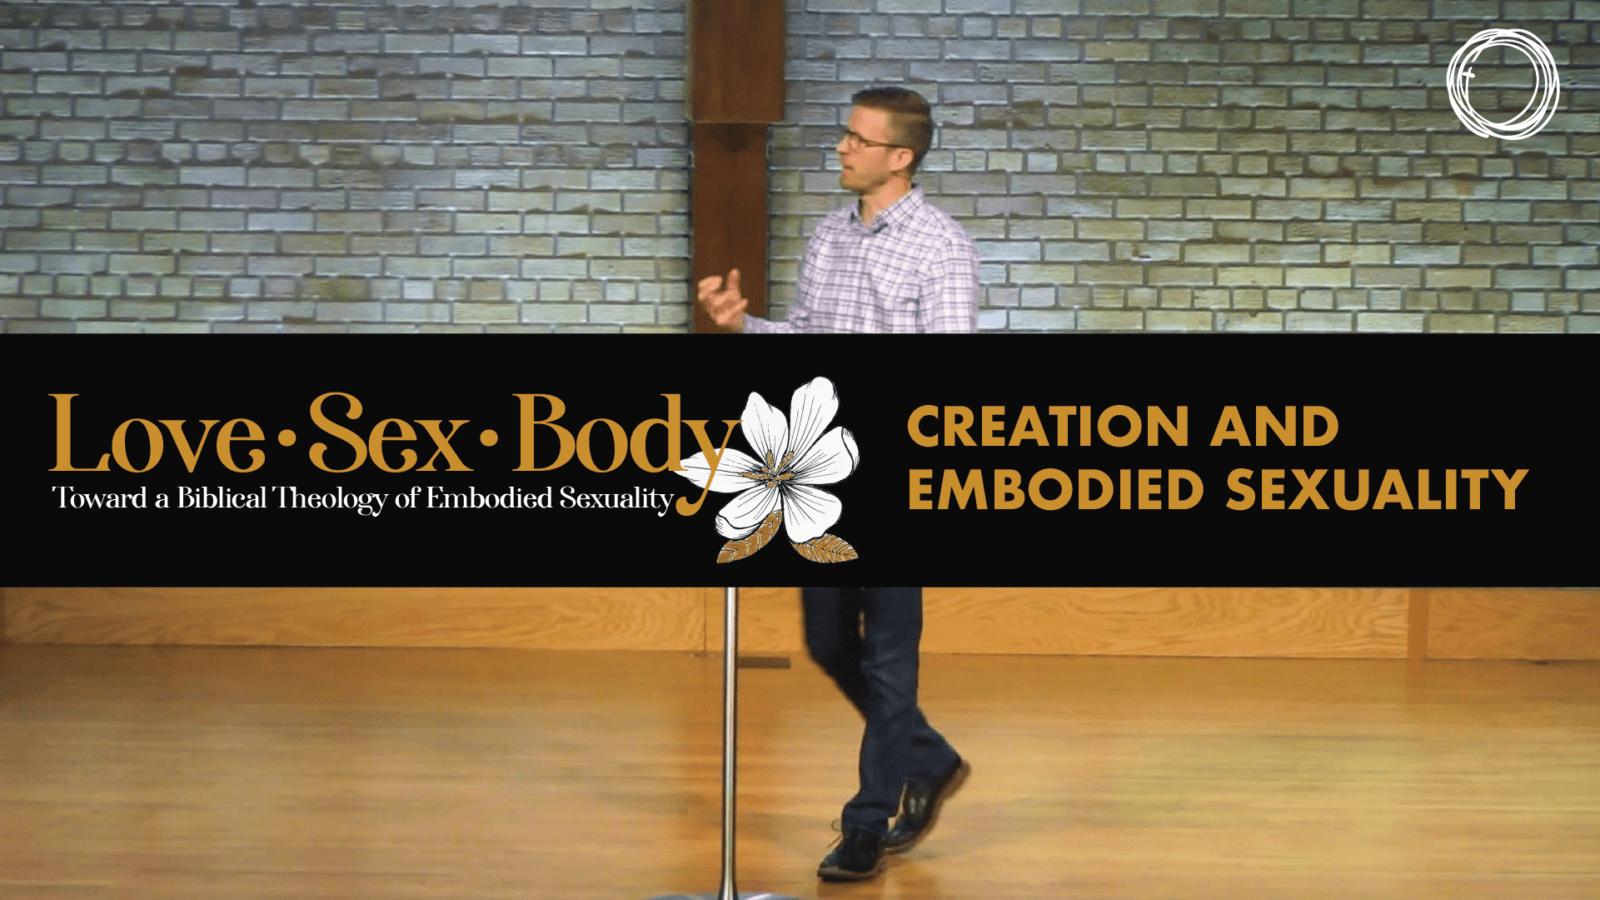 Creation and Embodied Sexuality